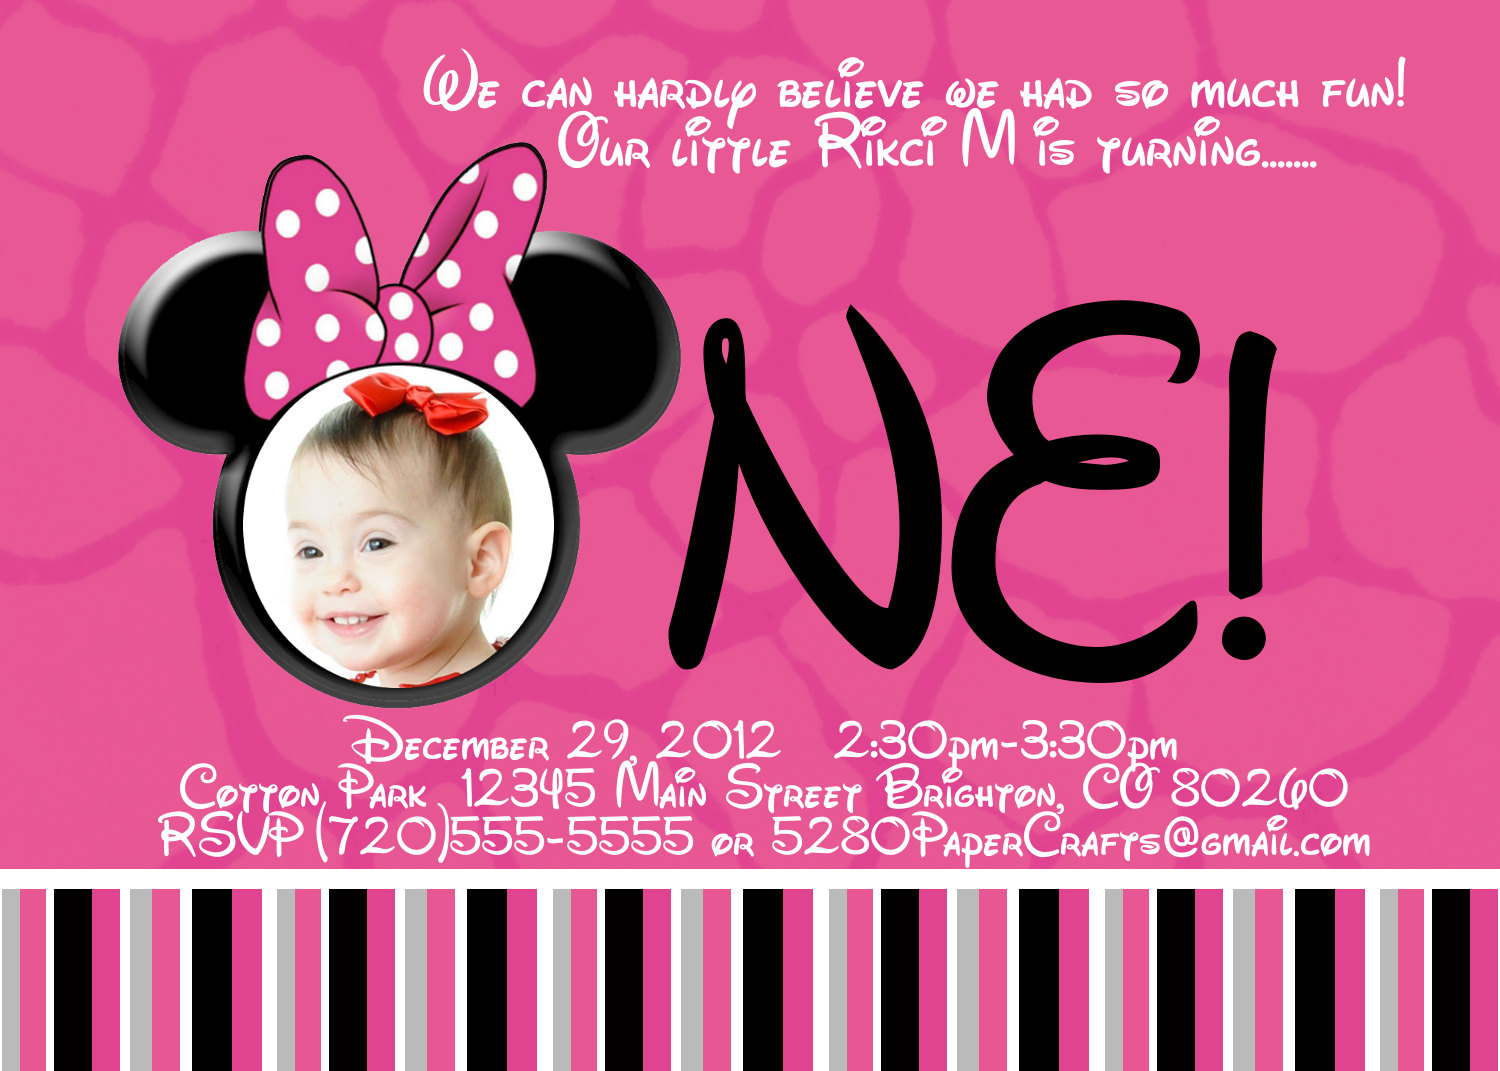 mickey mouse themed birthday party invitation wording ; 860c8ddc5d72c962a6947387c3e1eae6